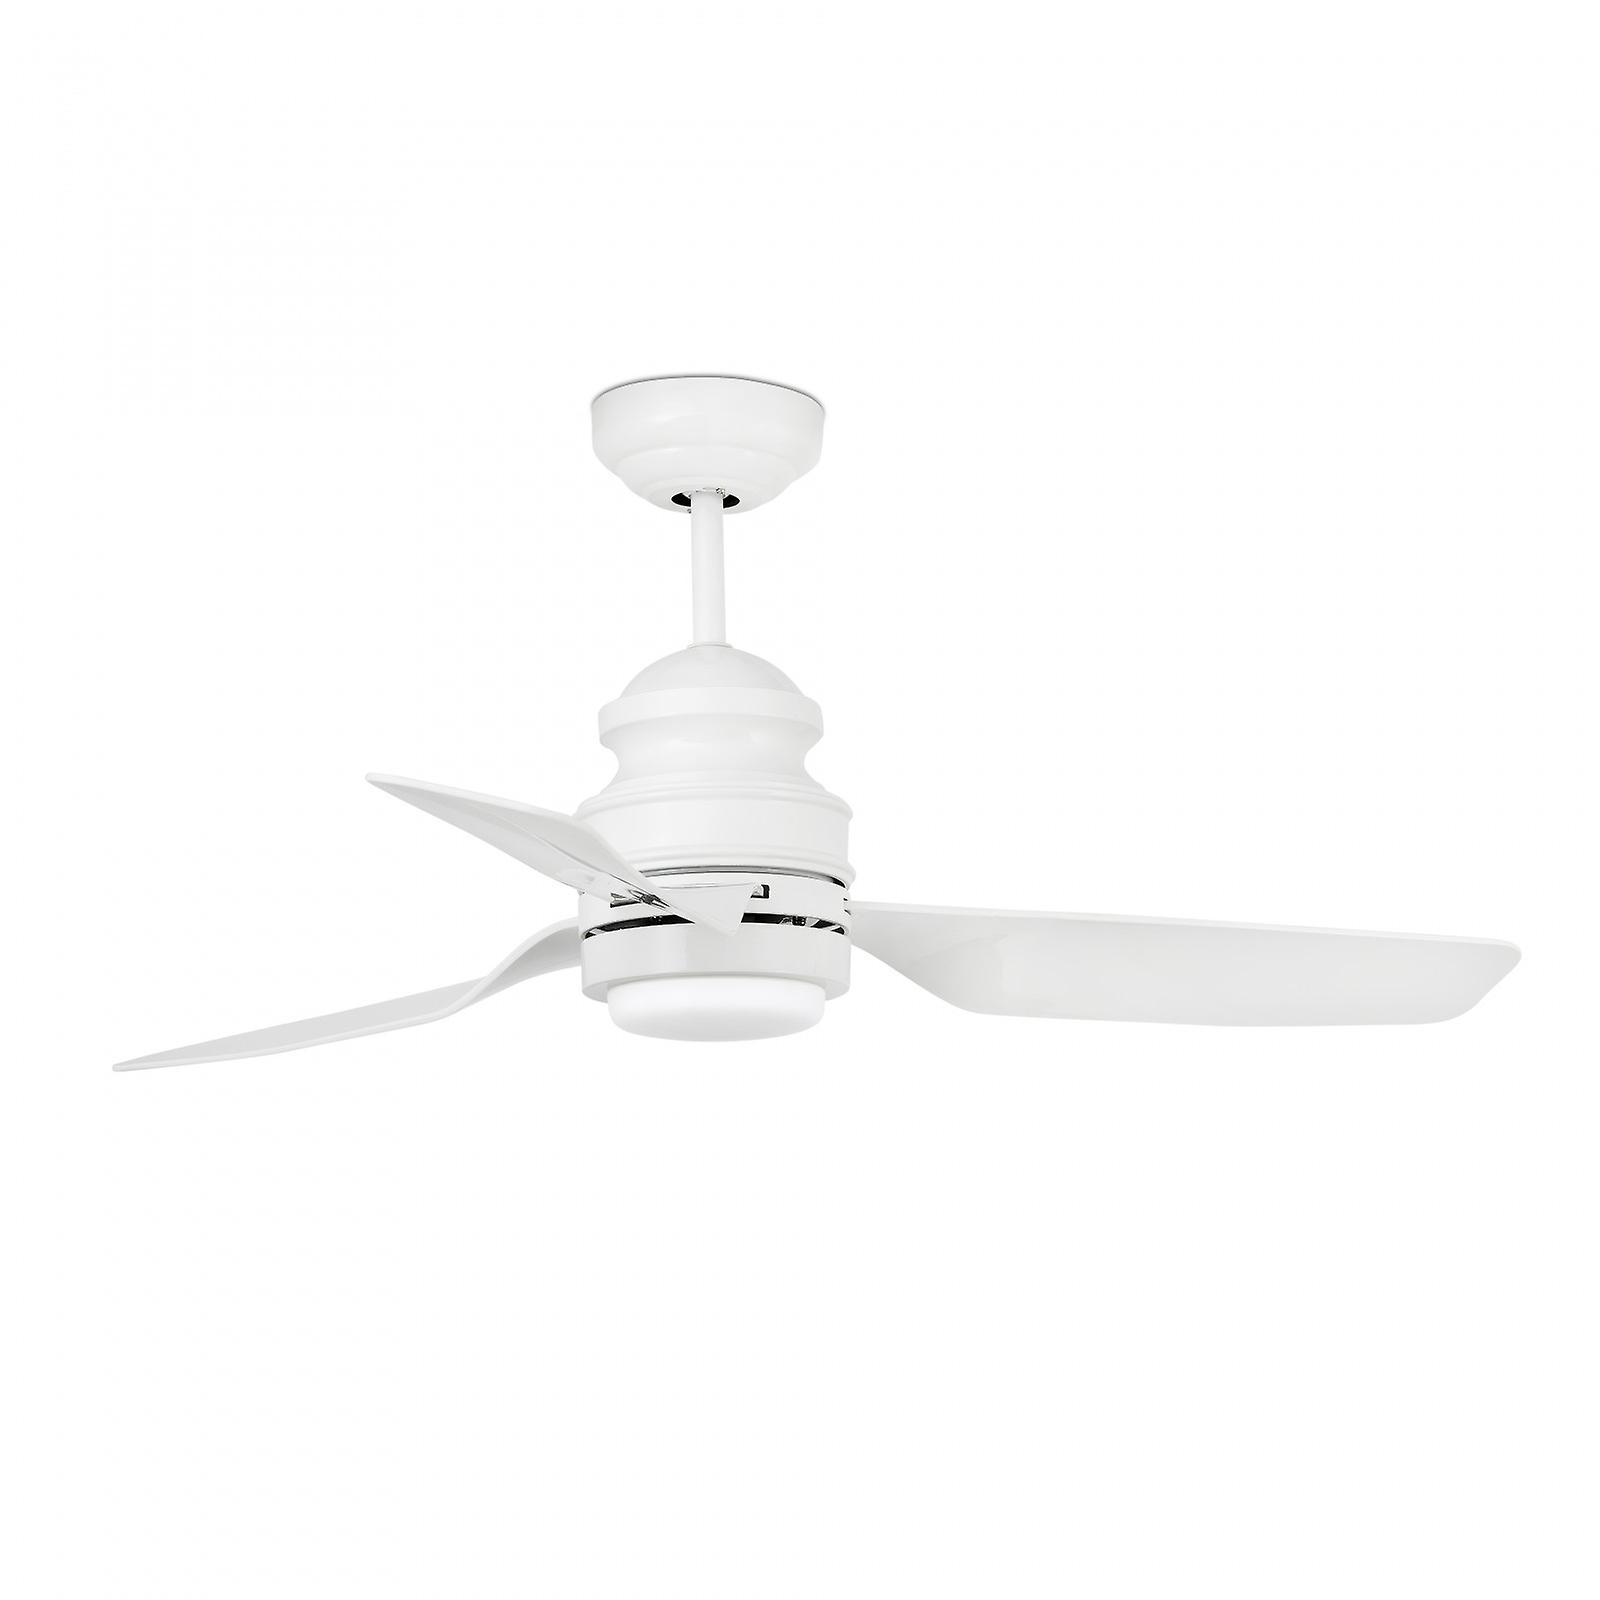 Faro ceiling fan Phuket white 120 cm / 47